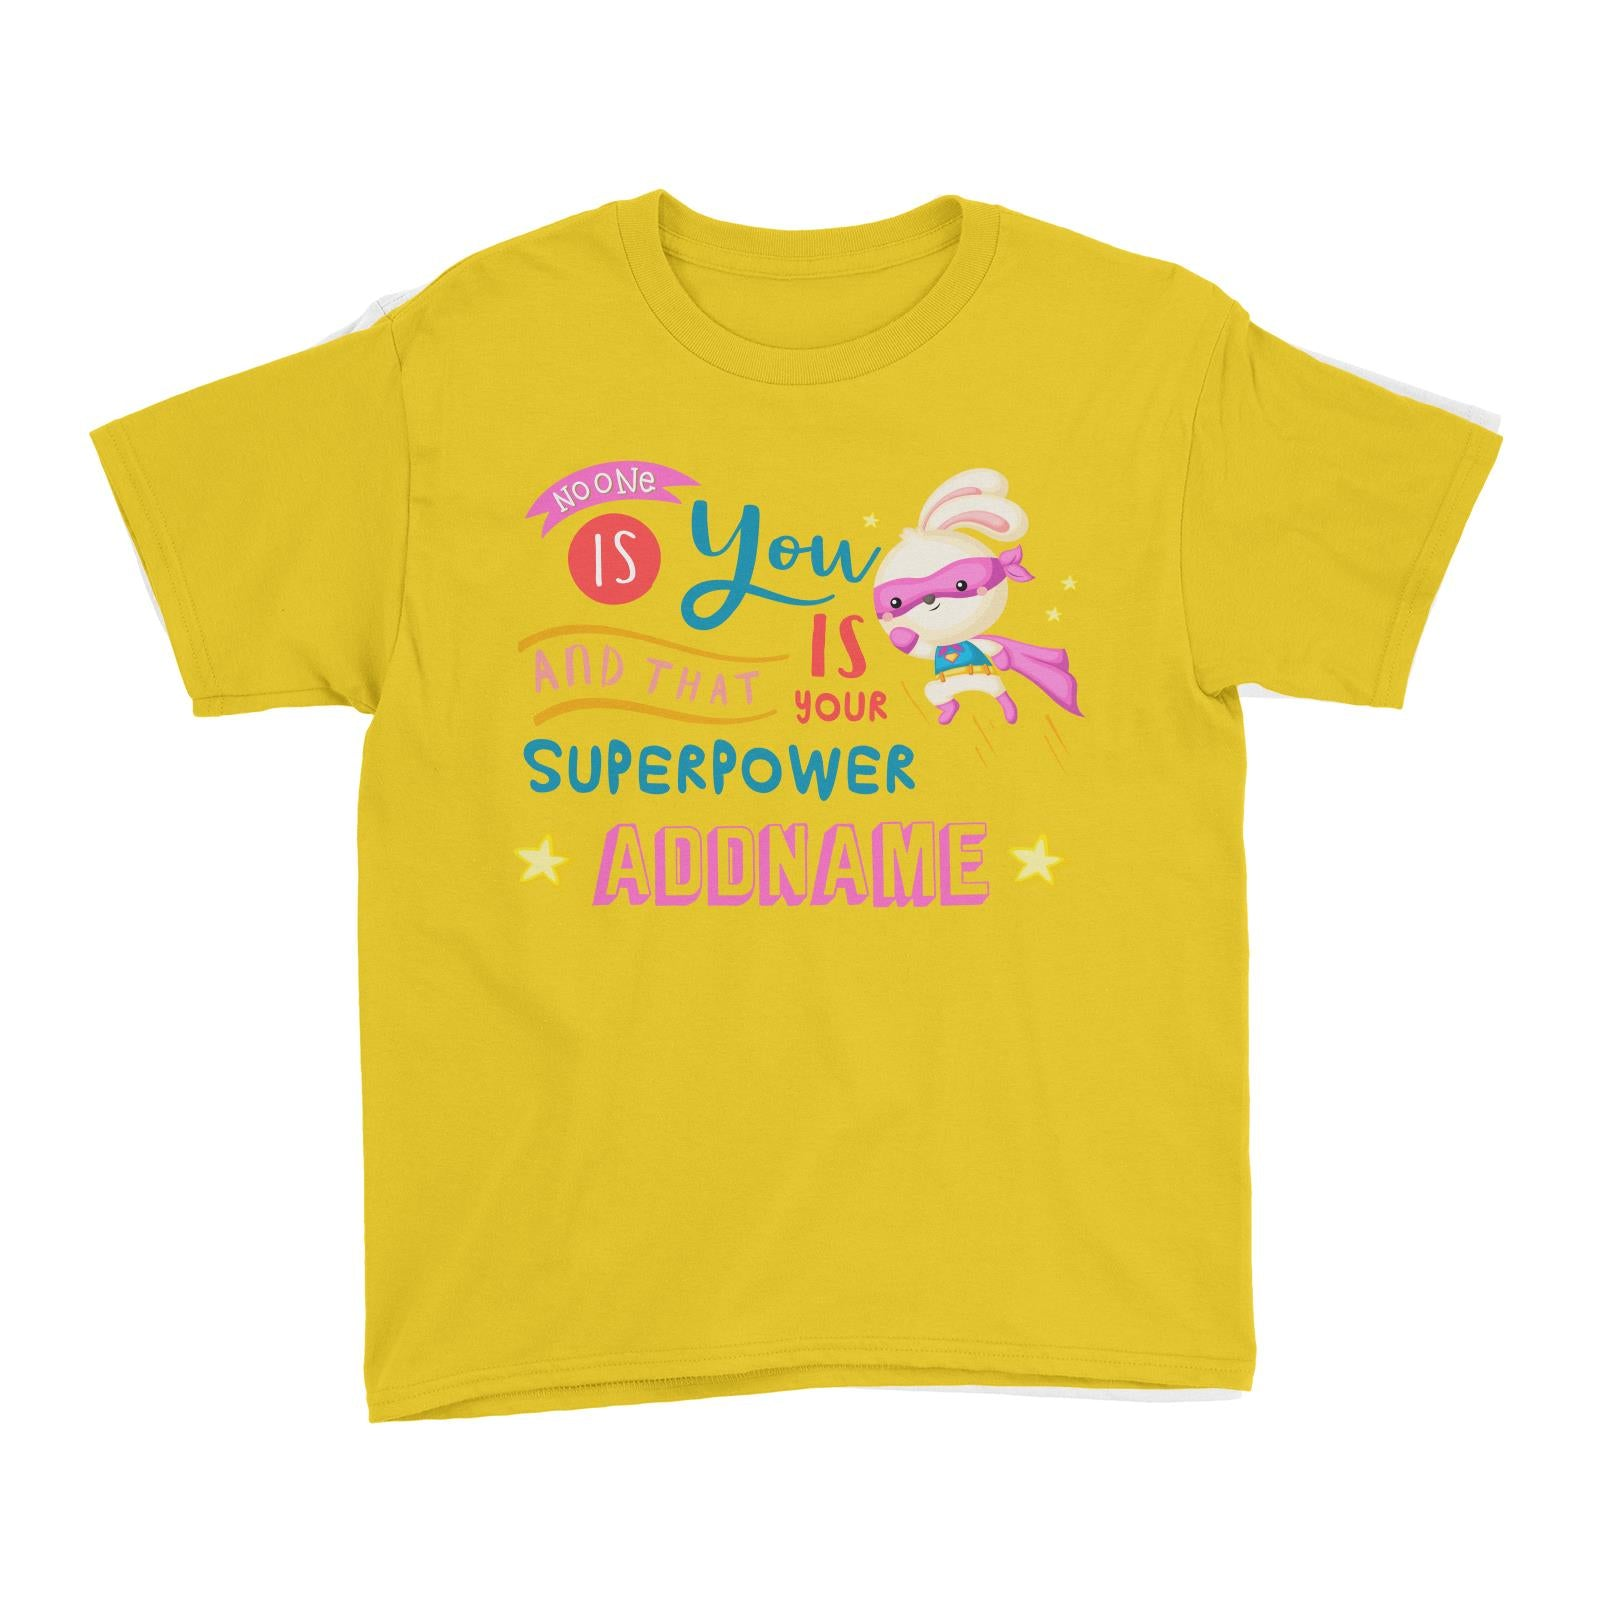 Children's Day Gift Series No One Is You And That Is Your Superpower Pink Addname Kid's T-Shirt